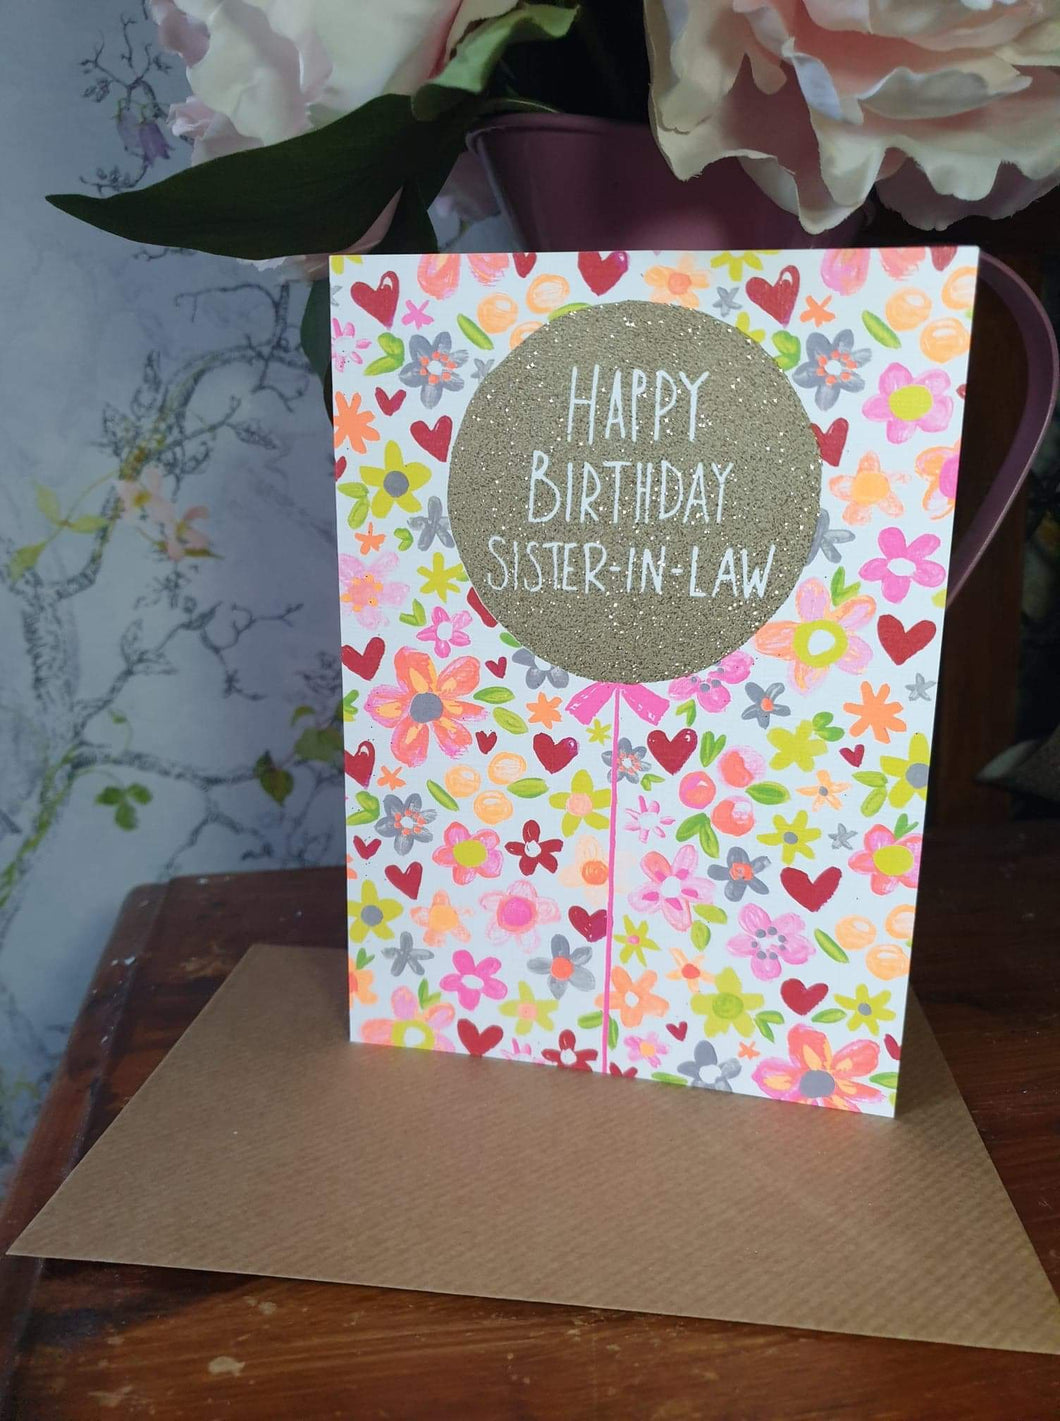 'Happy Birthday Sister-in-Law' Card